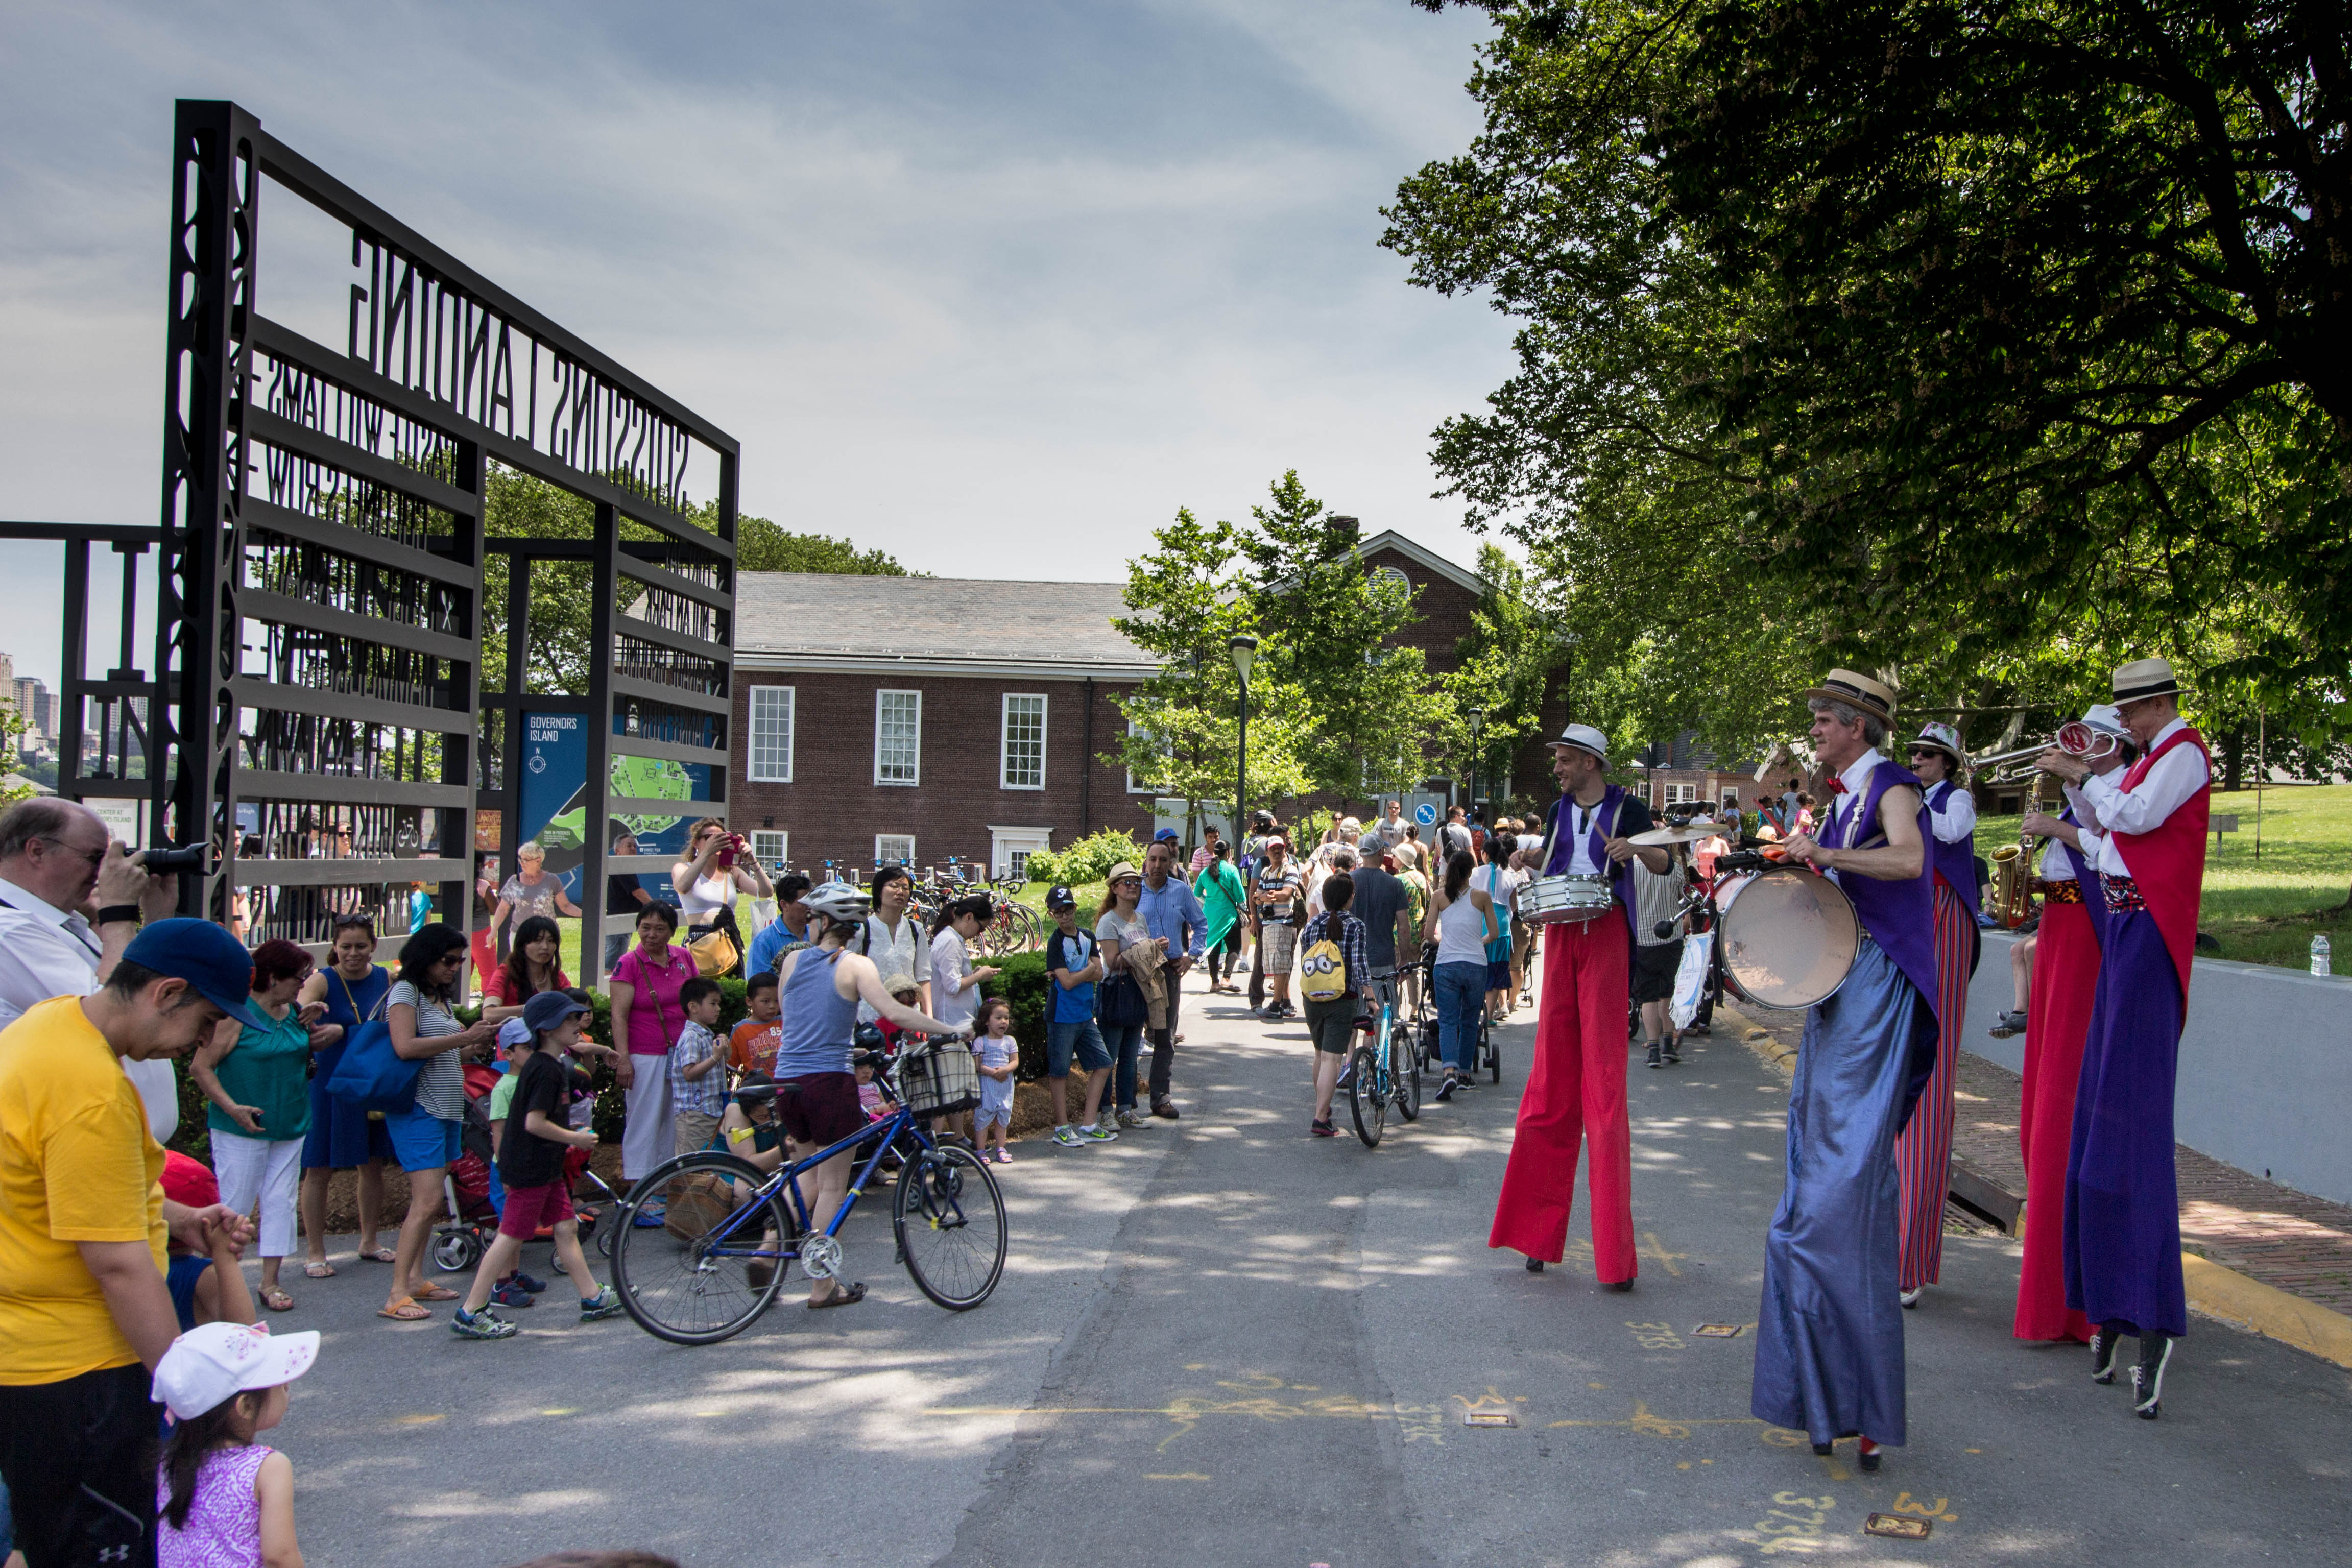 Fun Things to Do this Memorial Day Weekend at Governors Island